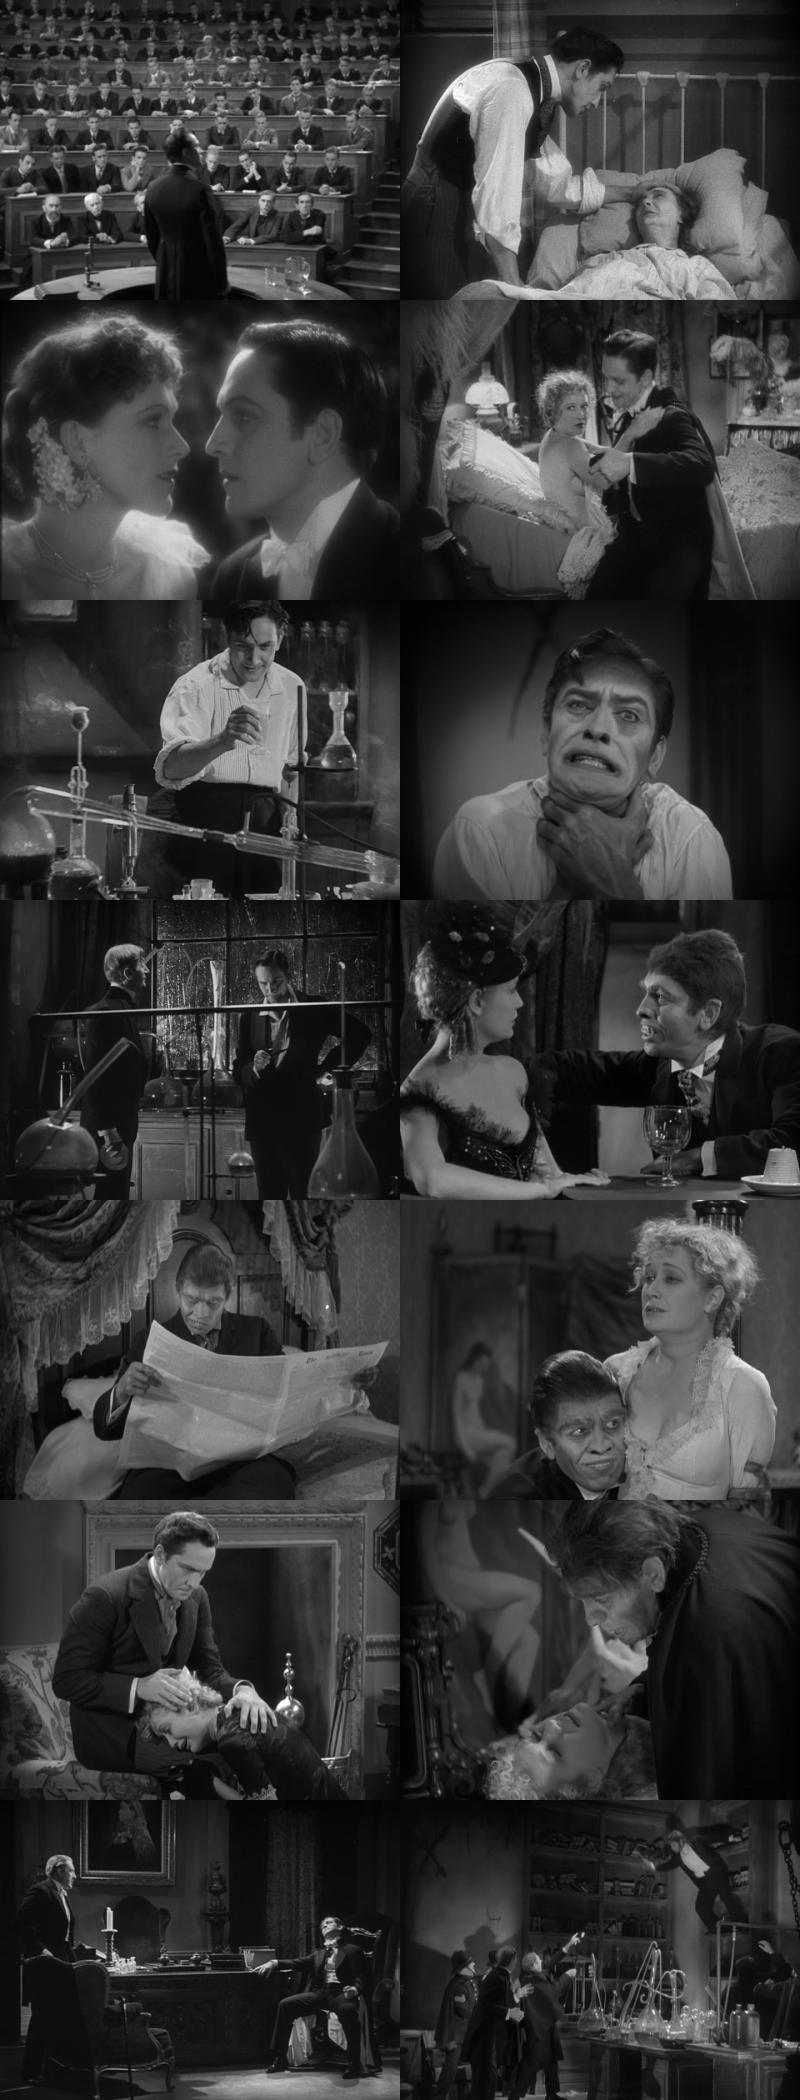 http://watershade.net/public/dr-jekyll-and-mr-hyde-1931.jpg